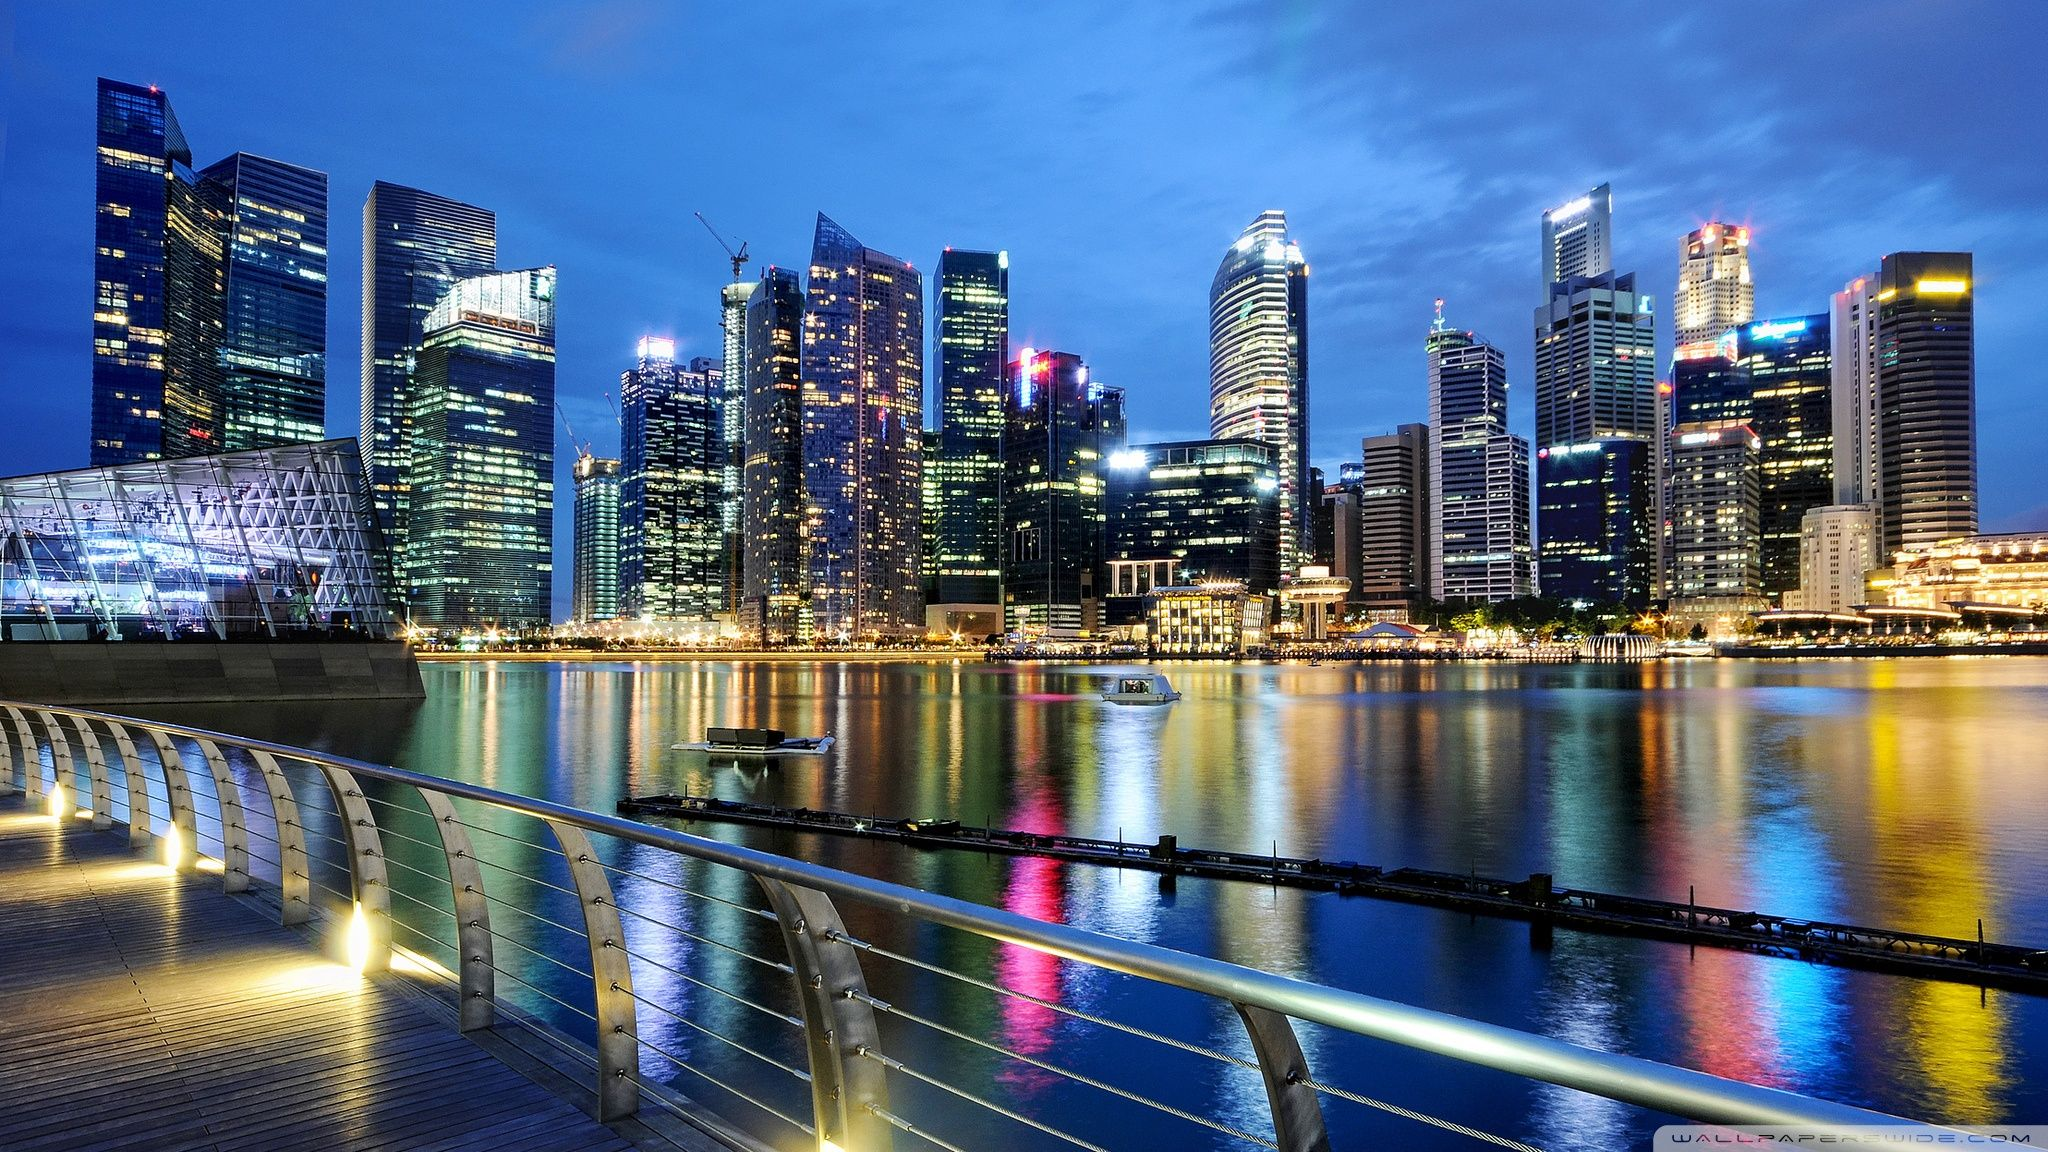 Singapore -- 'By WallpapersWide.com' | Singapur